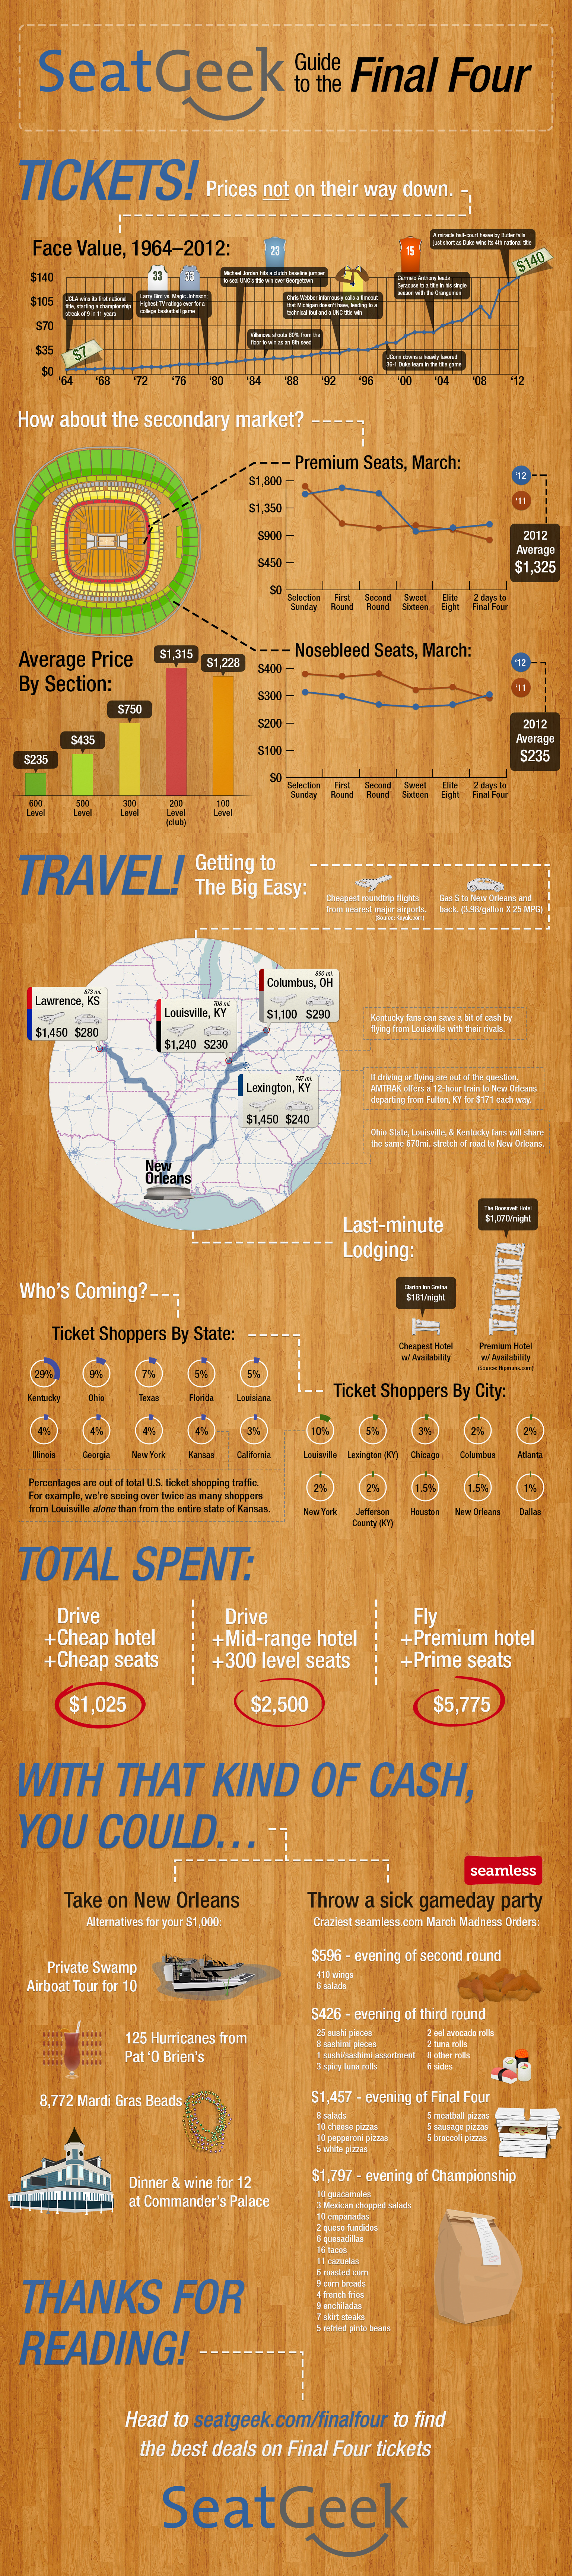 Final Four Infographic